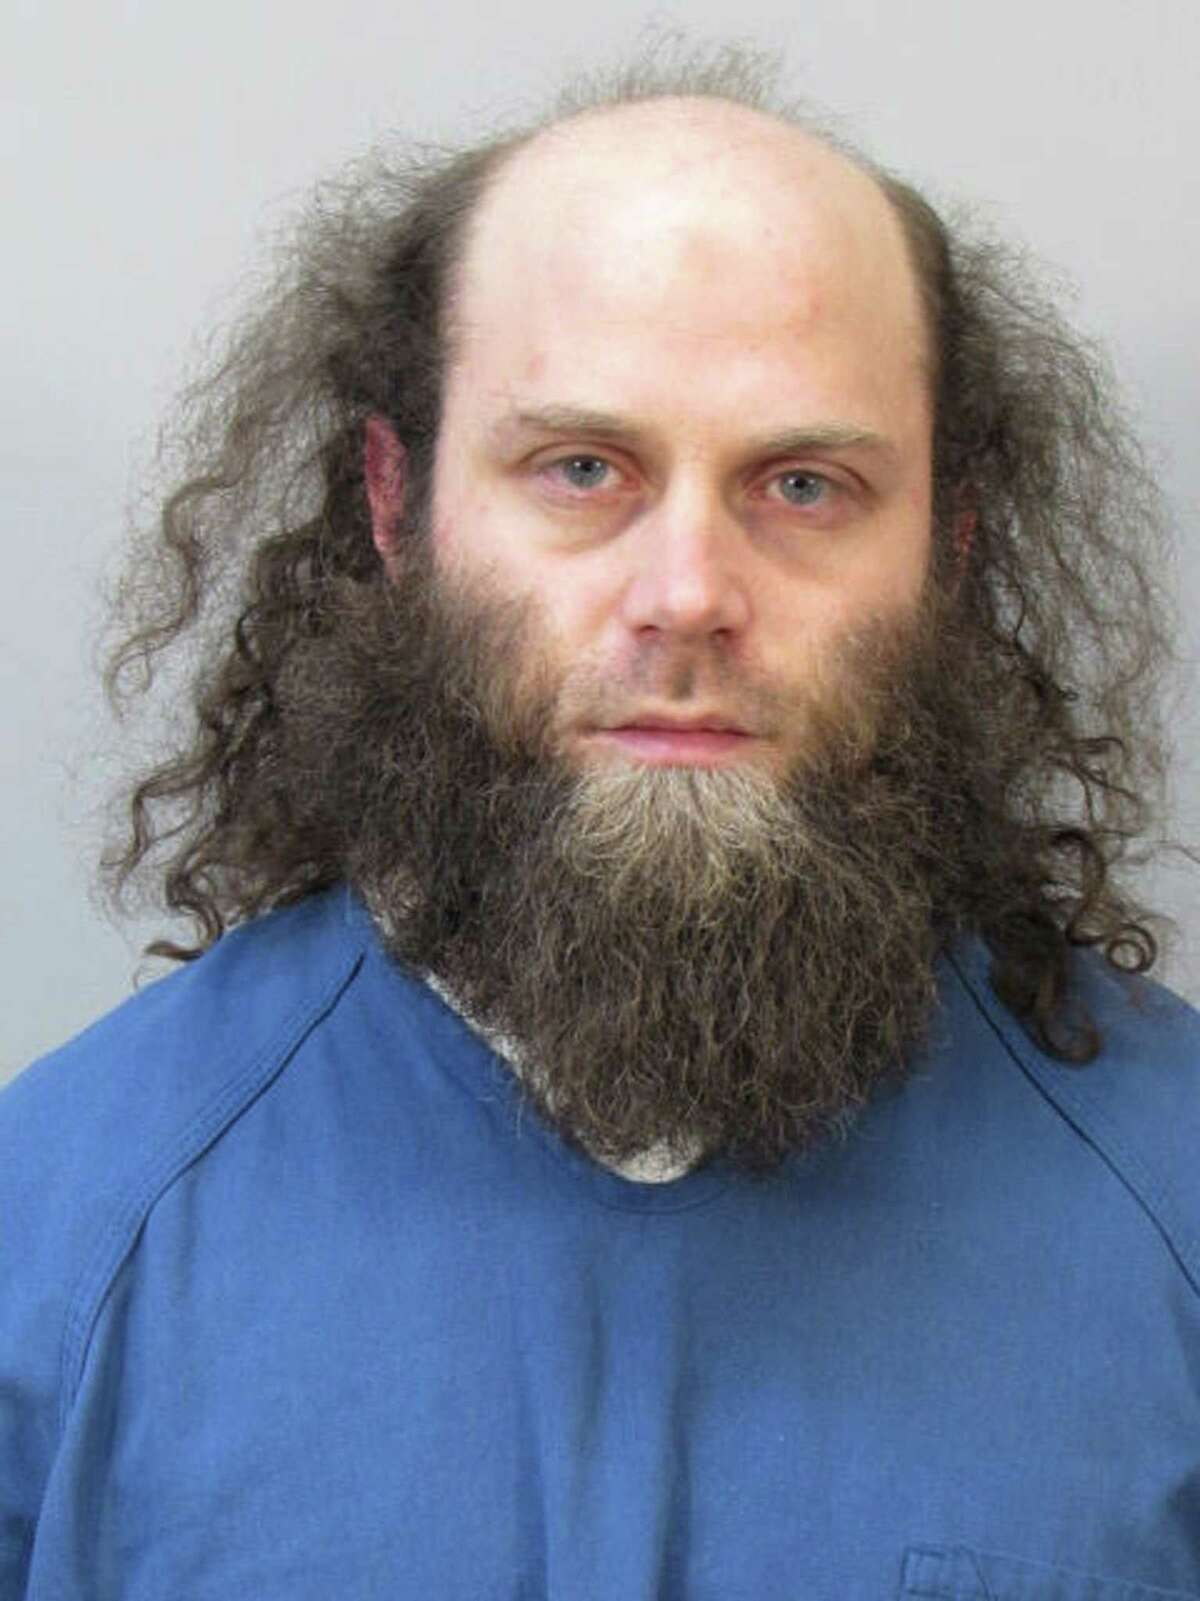 In this photo provided by the Dane County Sheriff's Office, Joshua Van Haften, 34, appears as he is booked Wednesday, April 8, 2015, in Madison, Wisc. Van Haften, accused of traveling to Turkey as part of a failed attempt to join the Islamic State in Syria, was ordered held without bond Thursday for trying to aid a terrorist group.